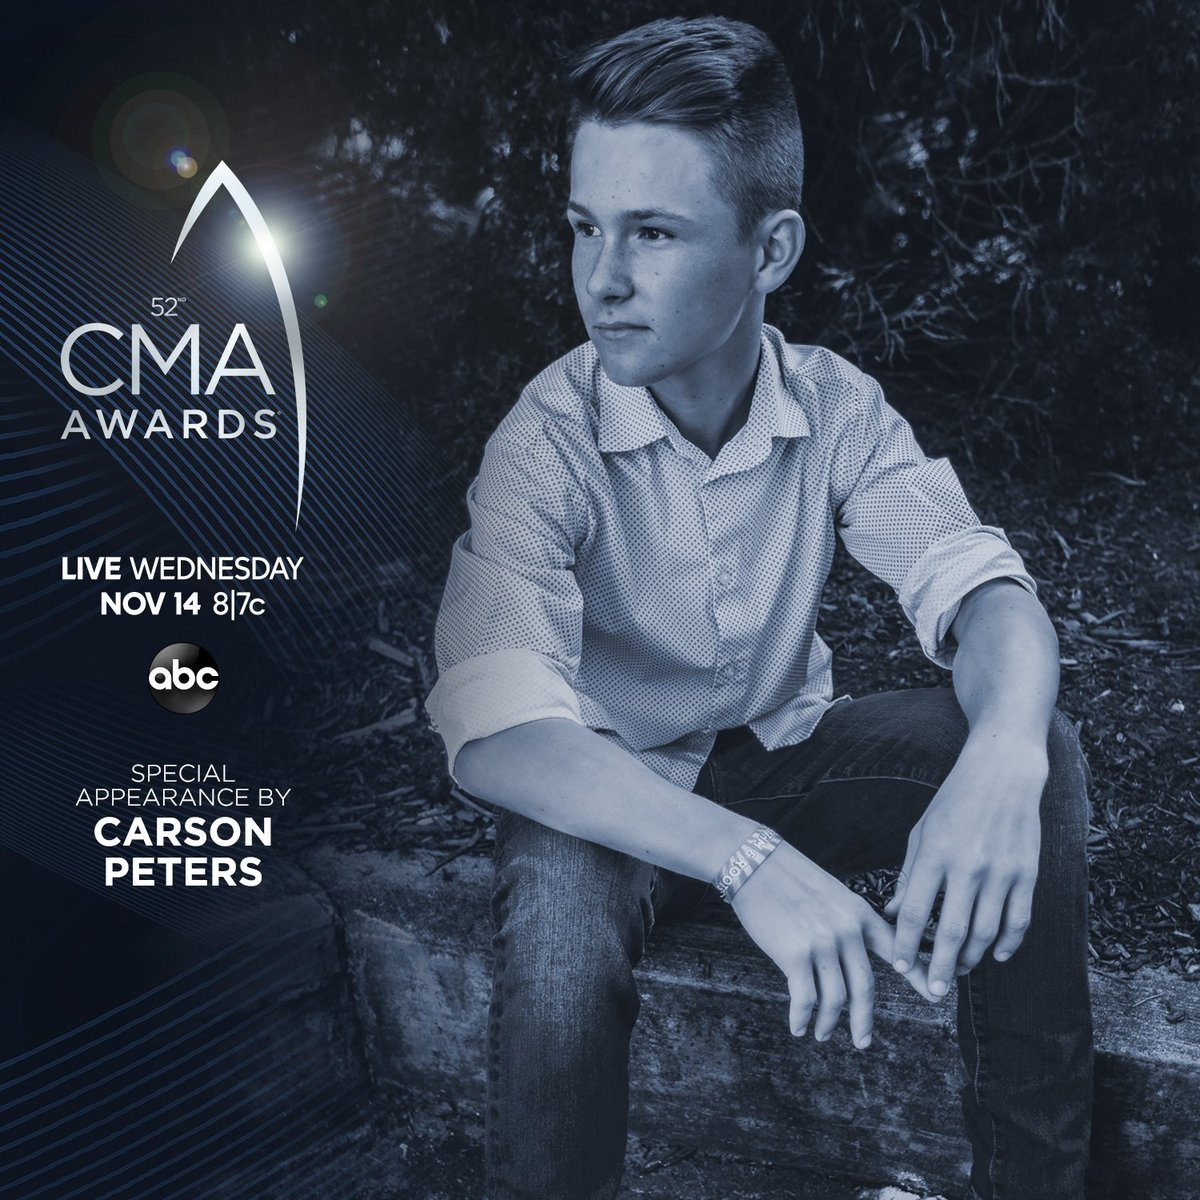 Watch a special appearance by @CarsonPMusic during the #CMAawards this Wednesday at 8|7c on @ABCNetwork. CMAawards.com